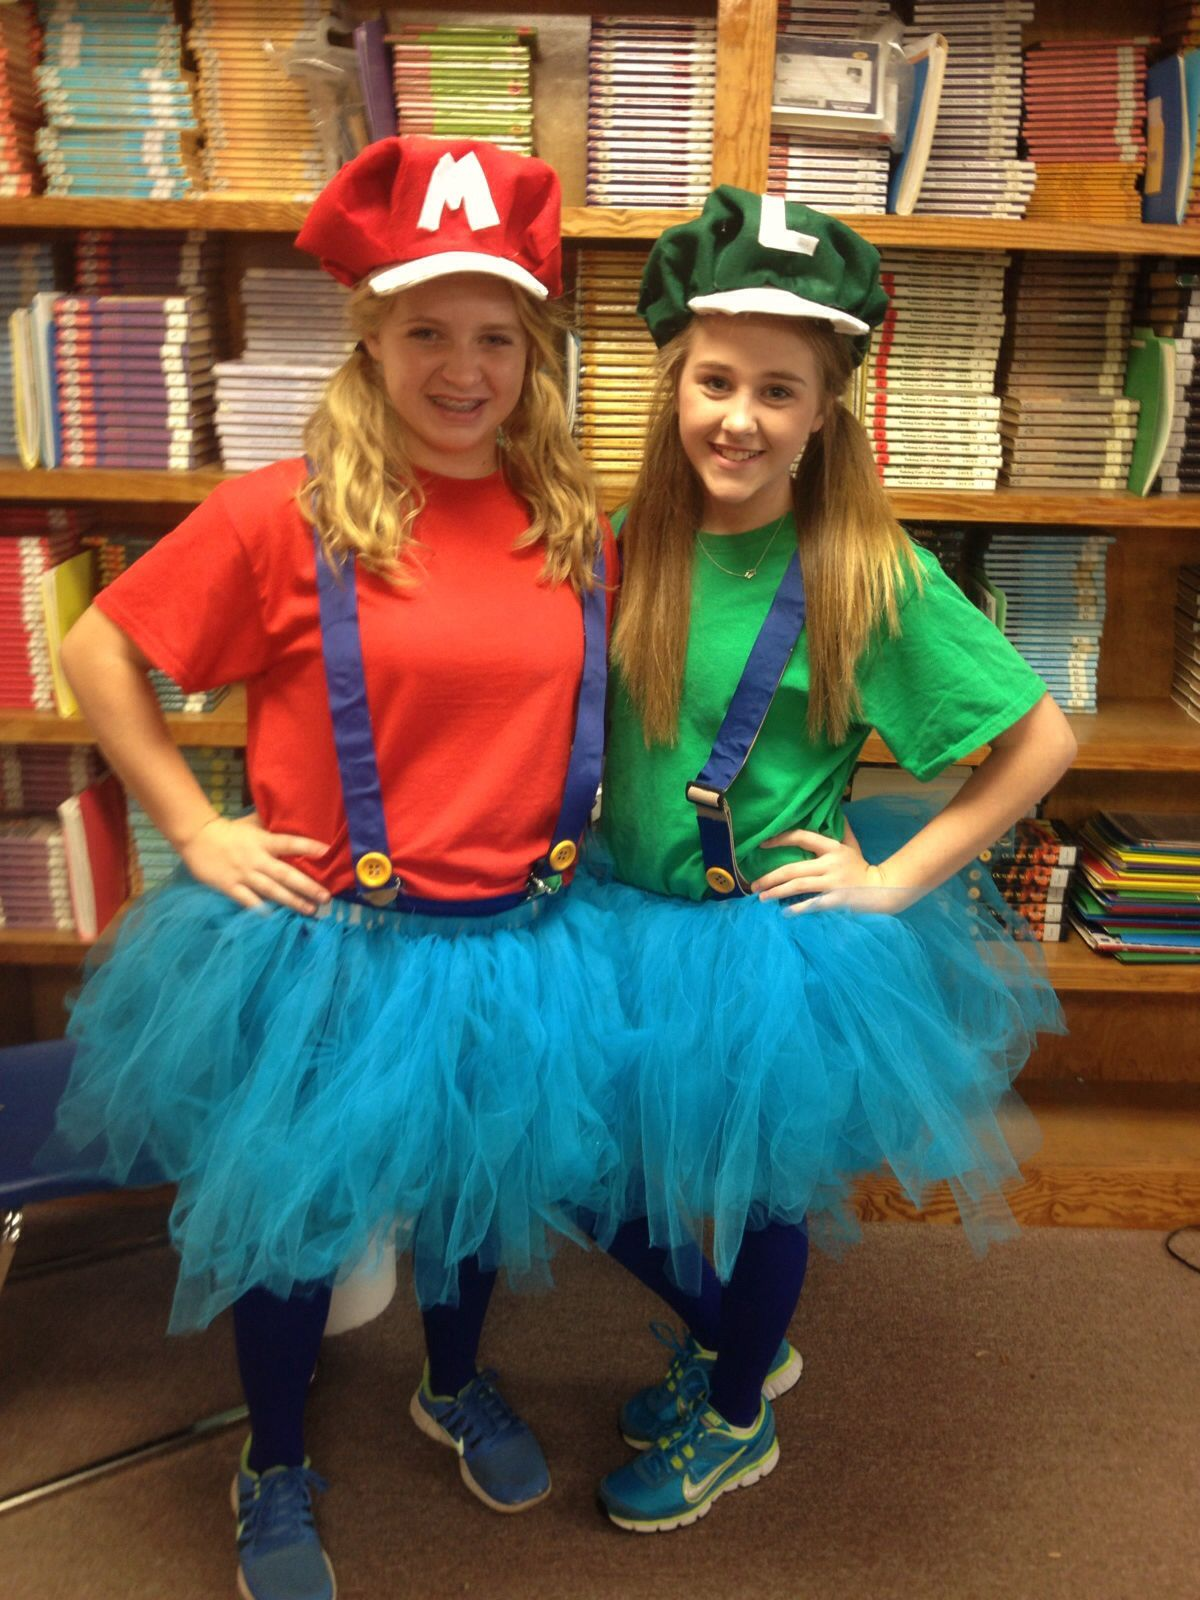 Mario and Luigi for character day spirit home ing week